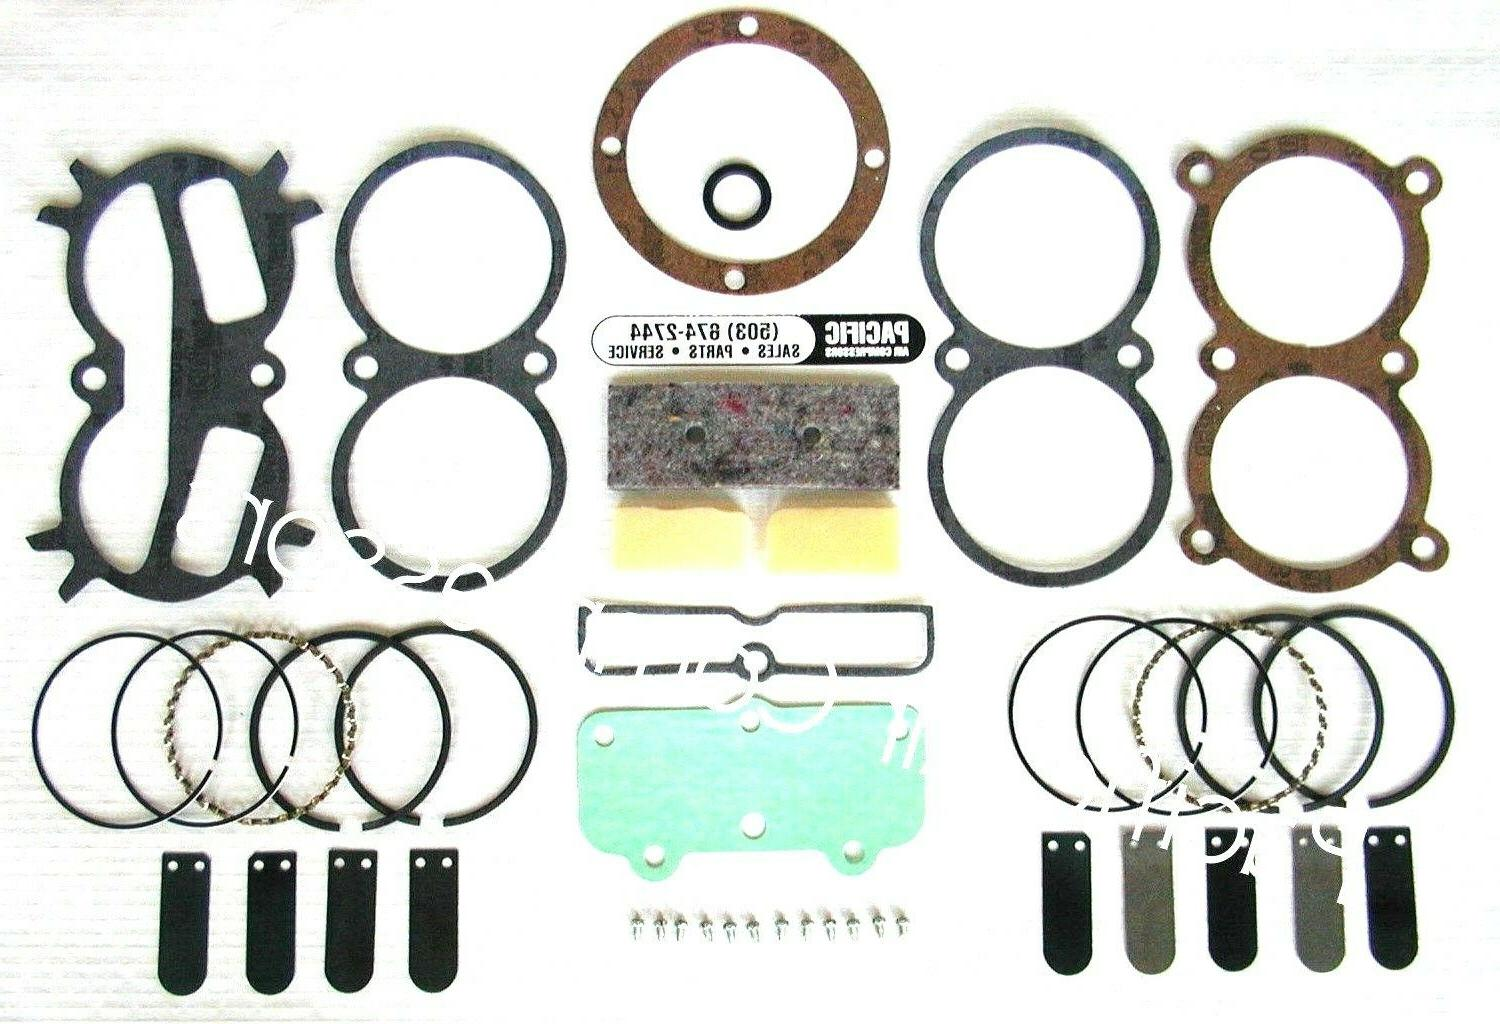 AIR COMPRESSOR REBUILD PART KIT CAMPBELL HAUSFELD SEARS WARD